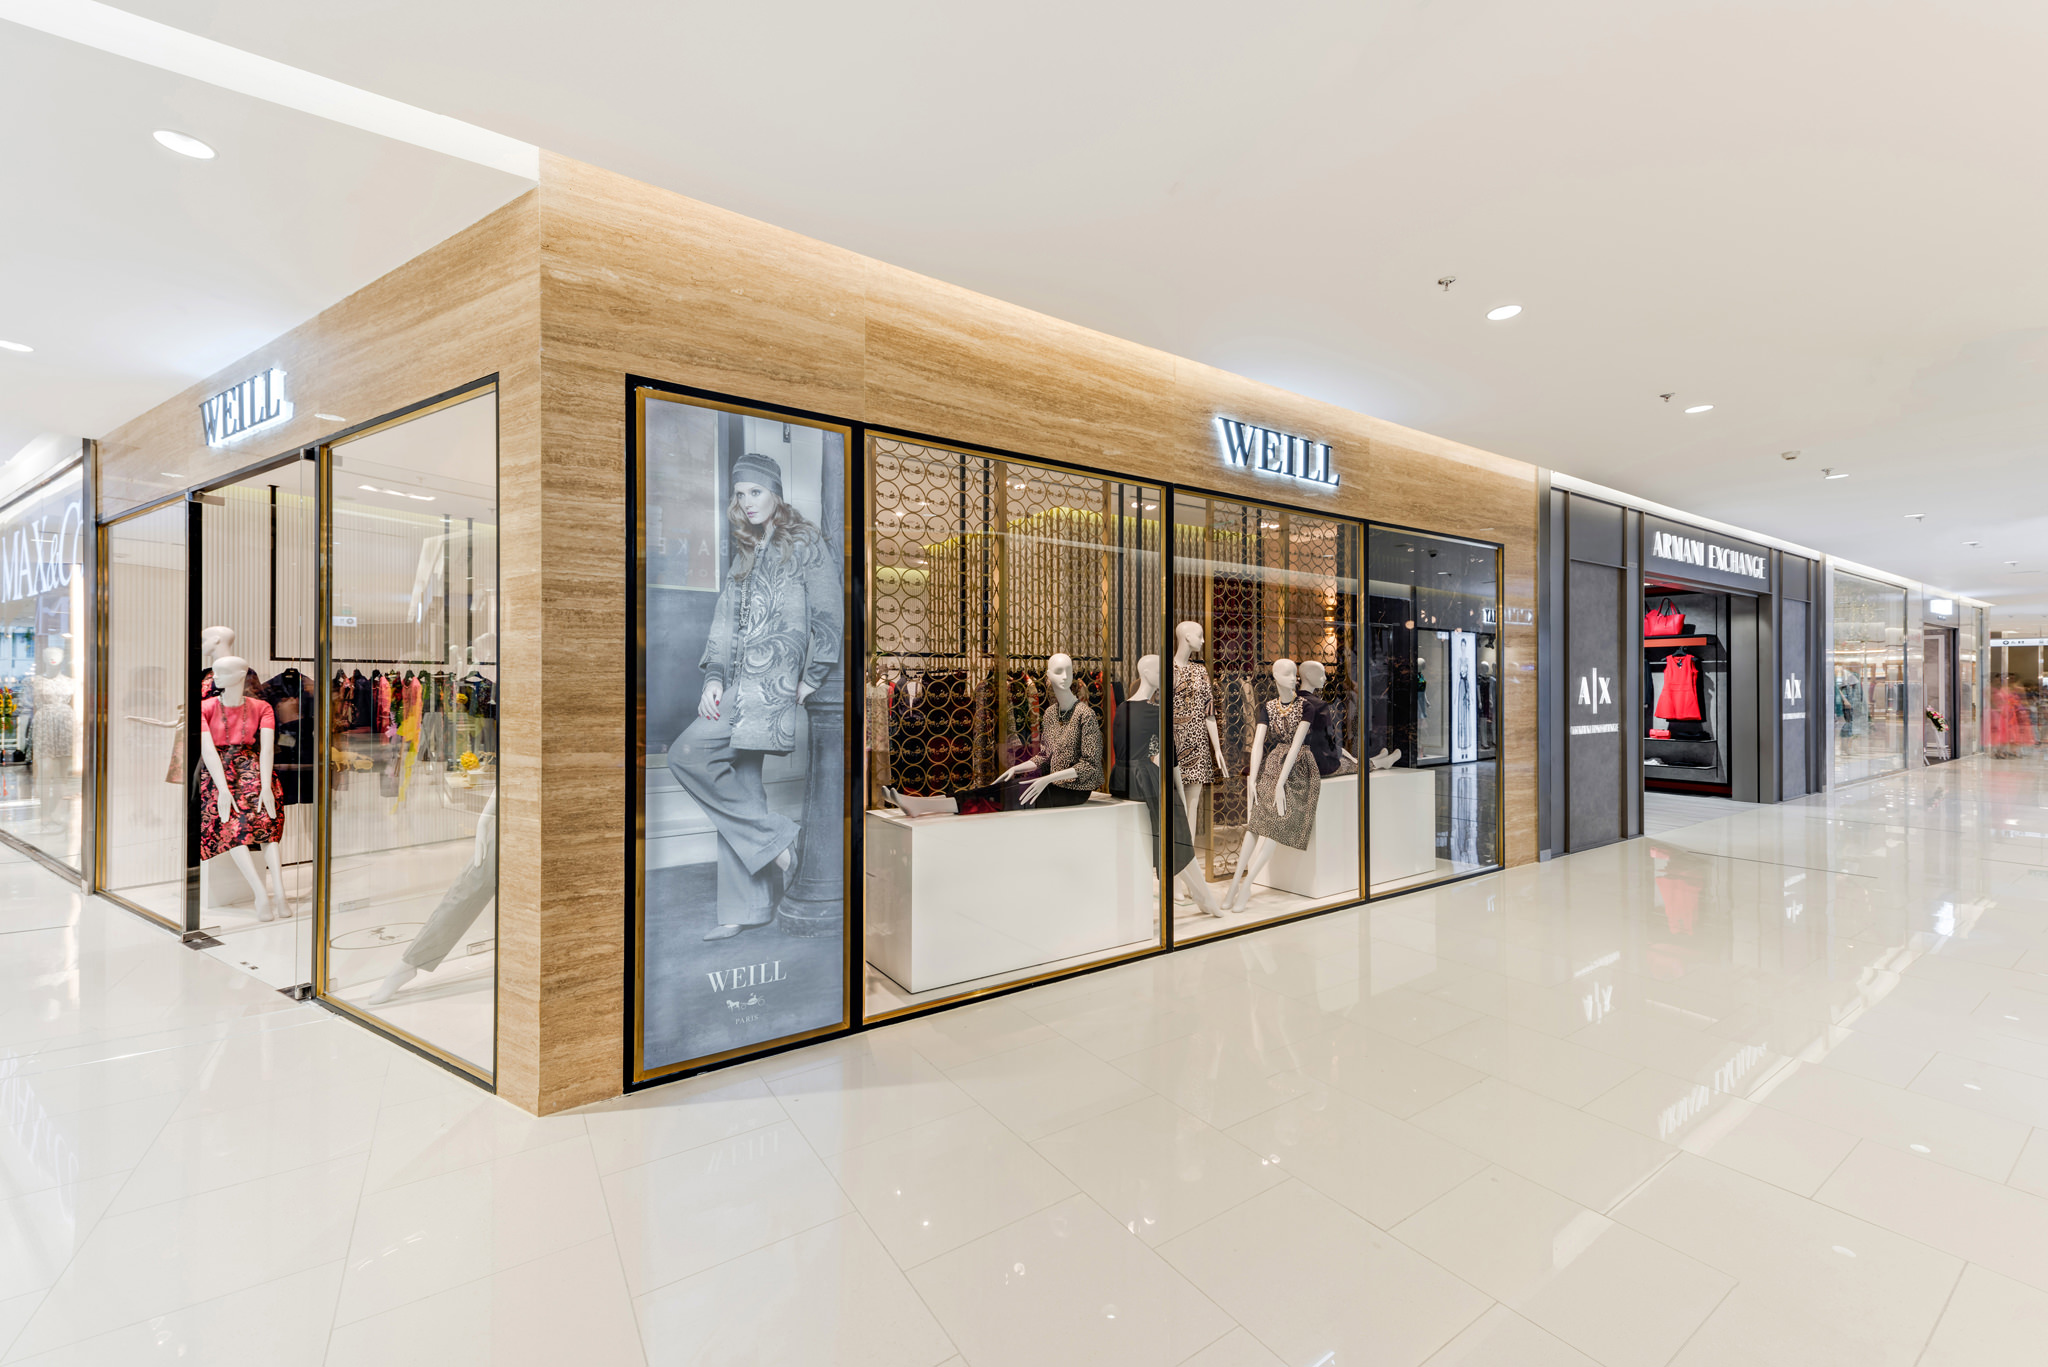 20160801 - Weill - HCM - Commercial - Interior - Store - Retouch 0001.jpg